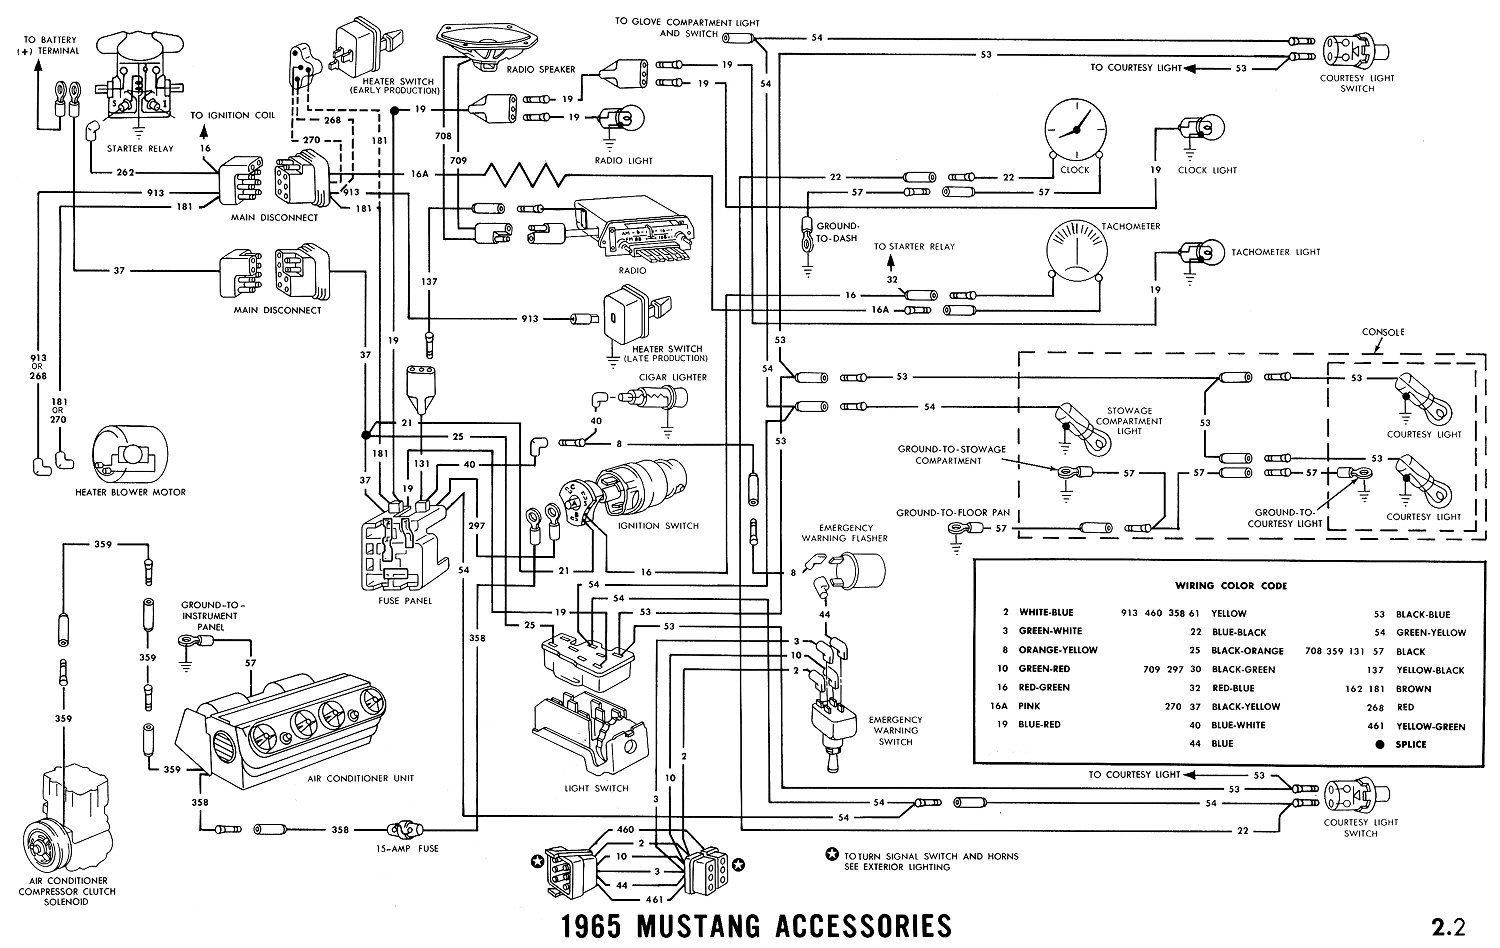 hight resolution of 1965 mustang color wiring diagram wiring diagram used 1965 mustang wiring schematic free